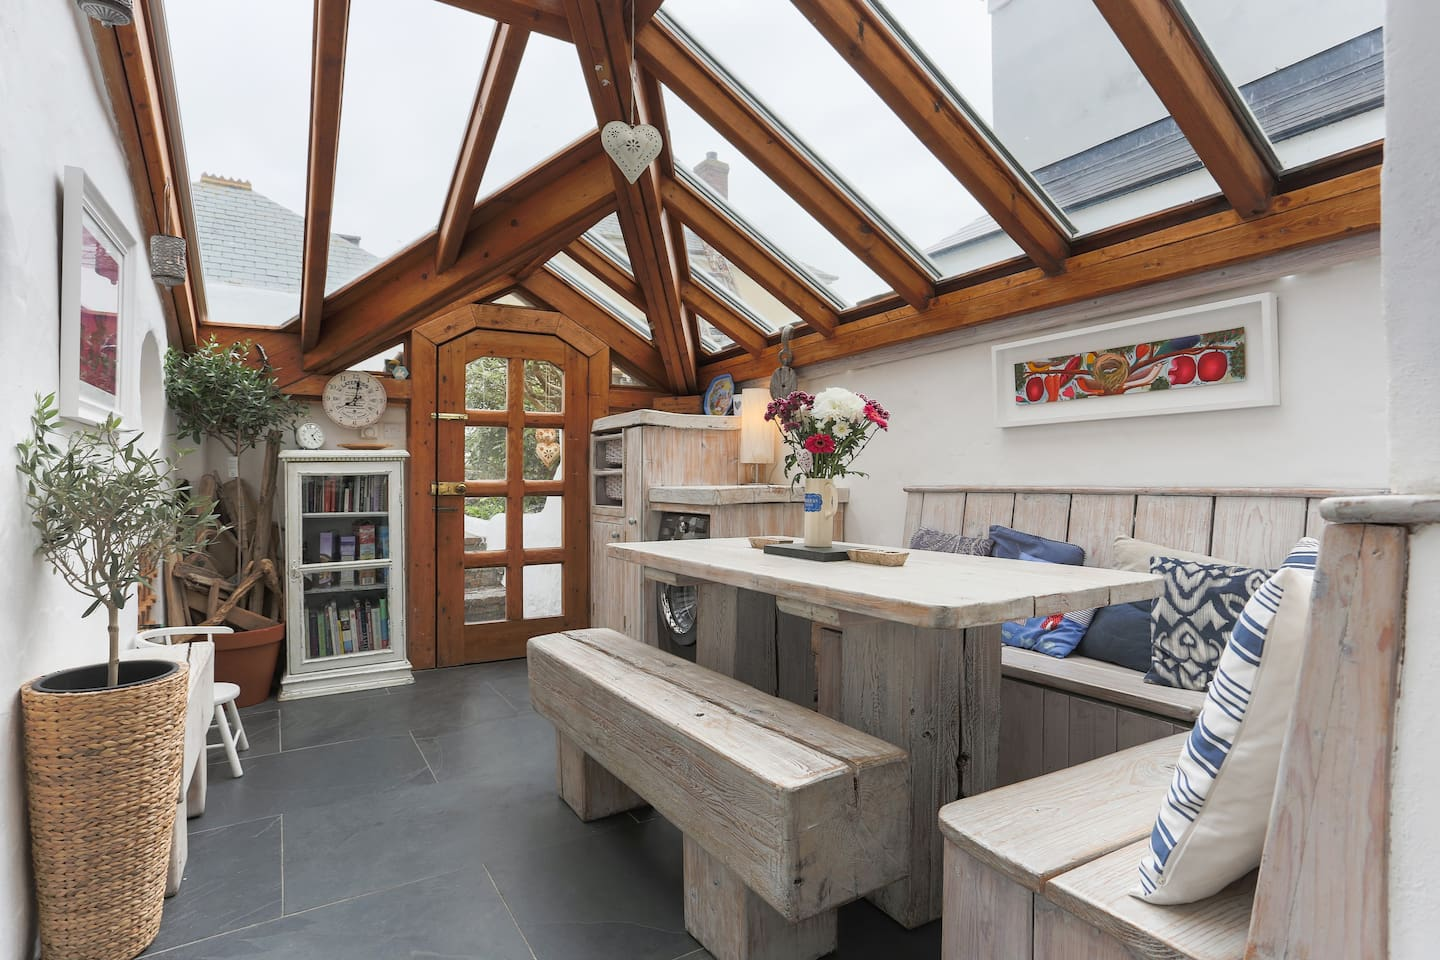 the light and sunny conservatory offers the perfect space to unwind and connect.